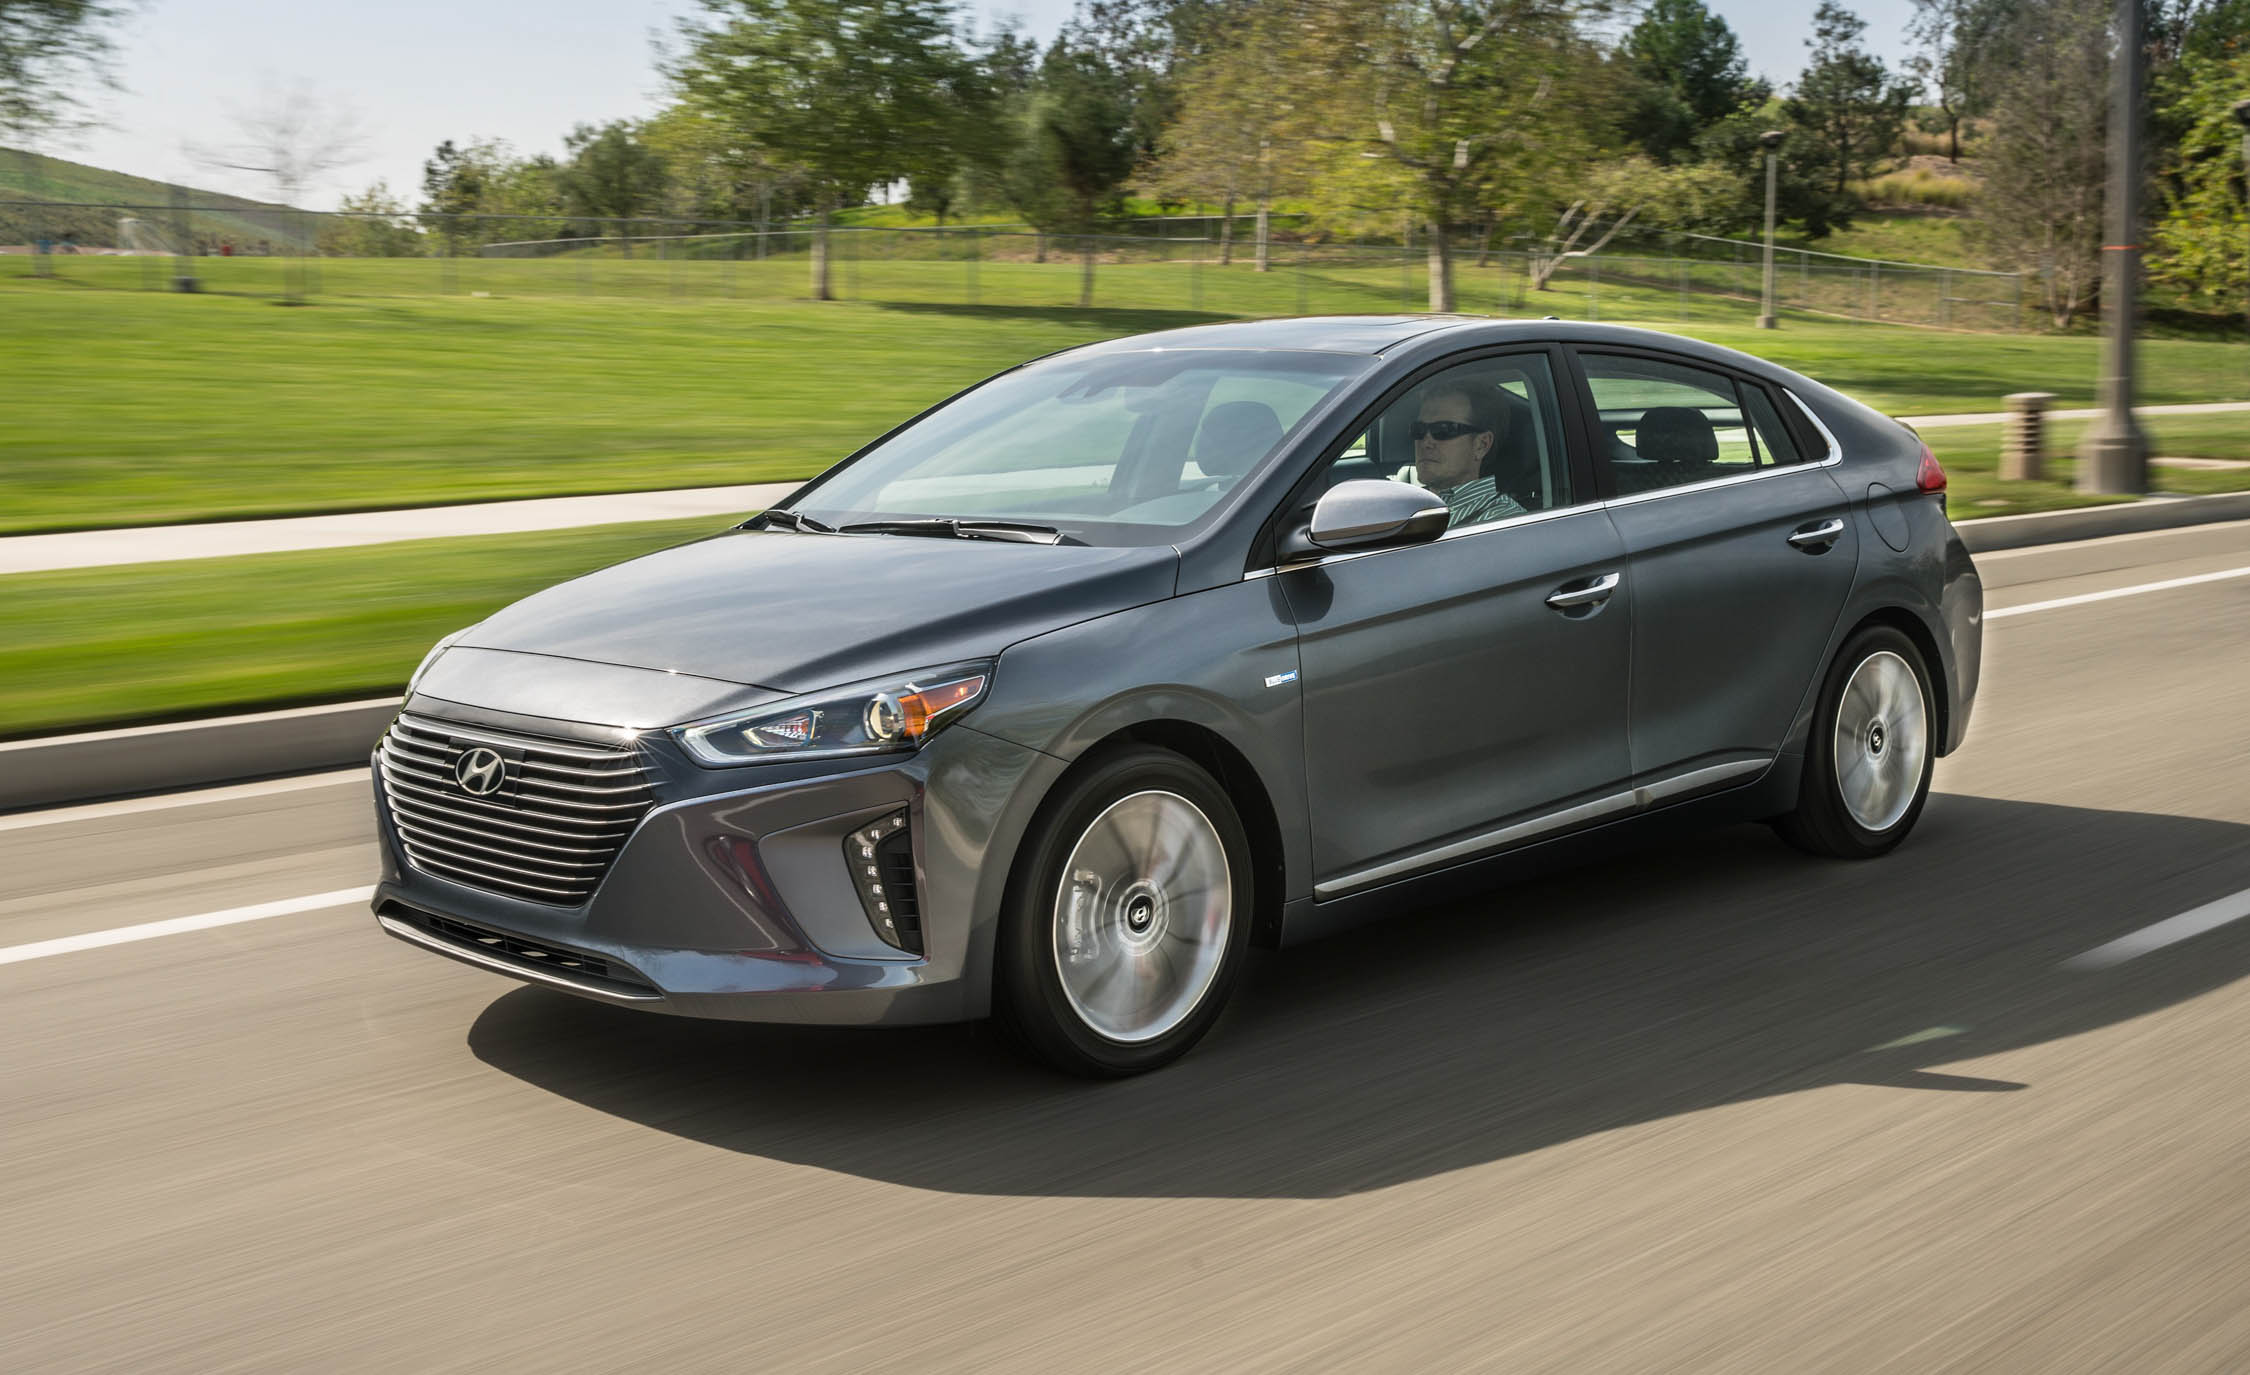 2017 Hyundai Ioniq Grey Metallic (Photo 37 of 67)